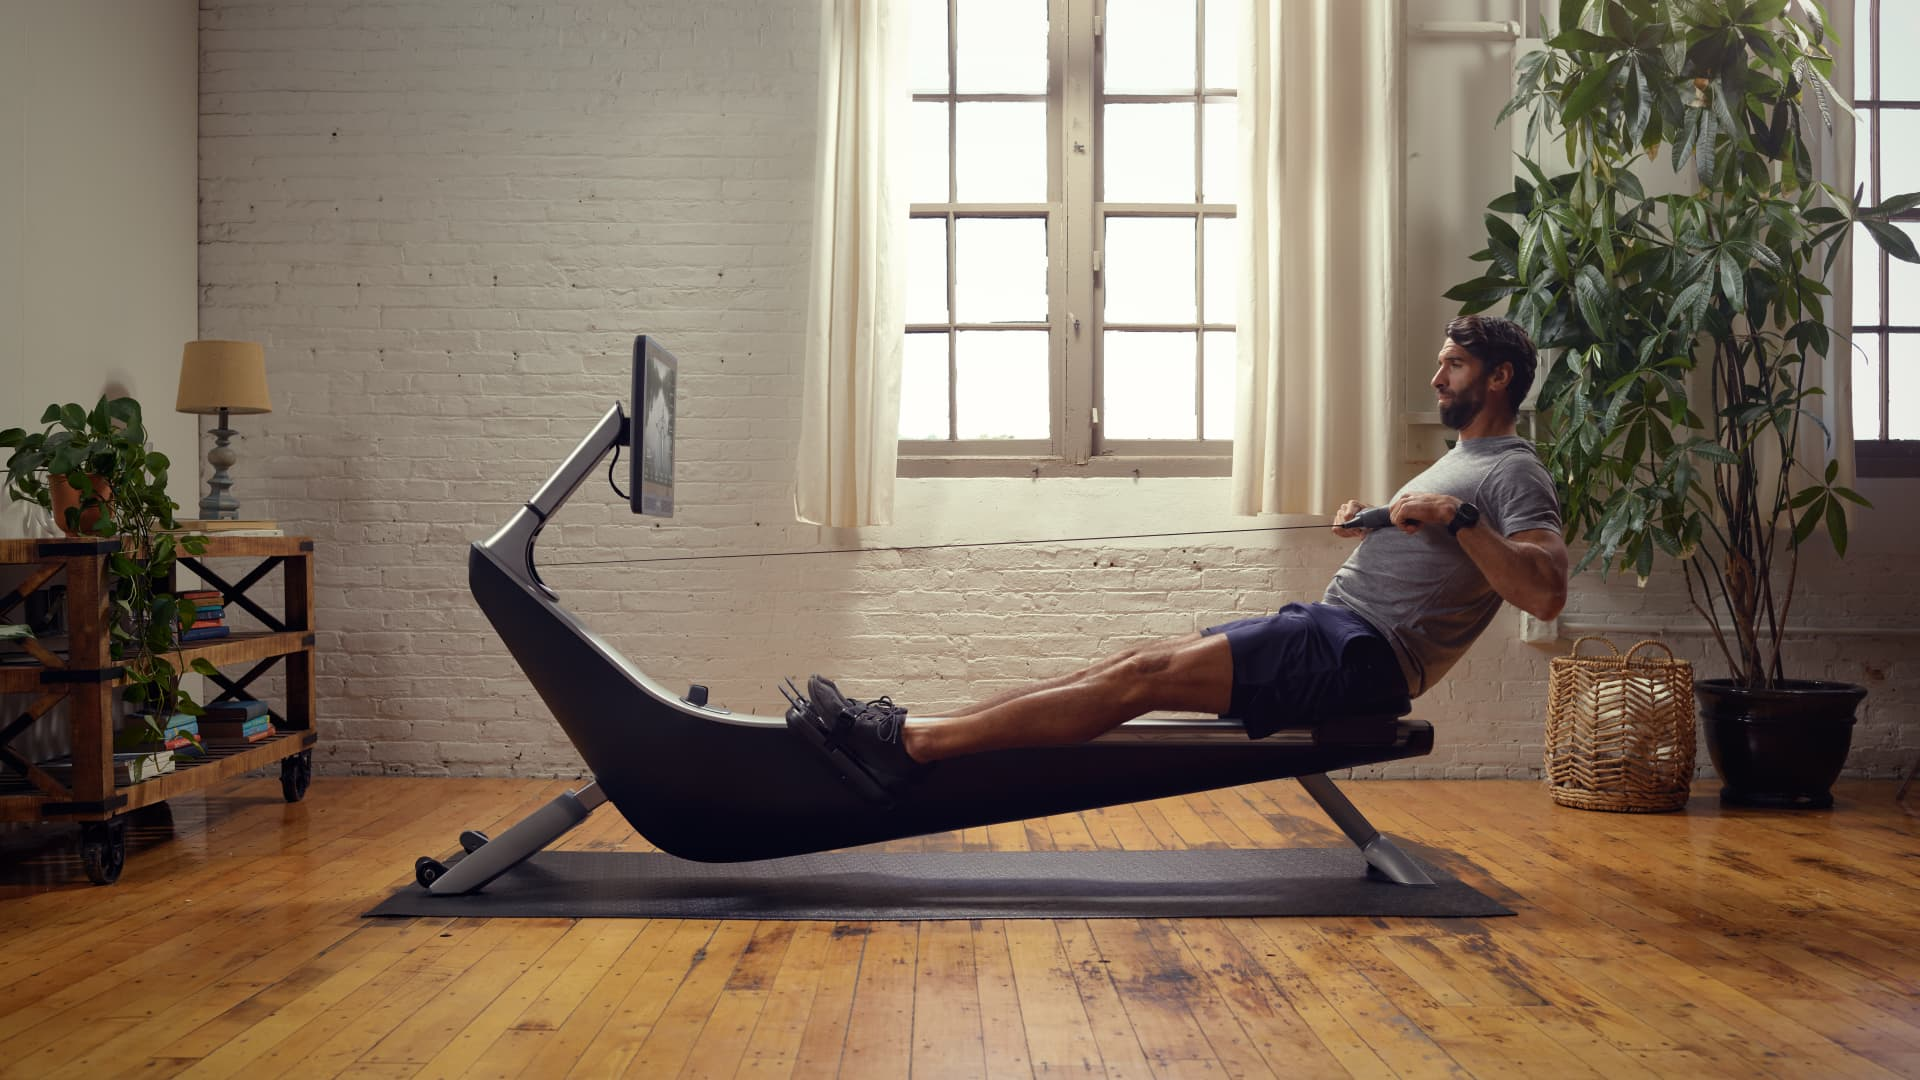 Hydrow, the maker of a $2,295 rowing machine, said it has secured nearly $200 million in financing.